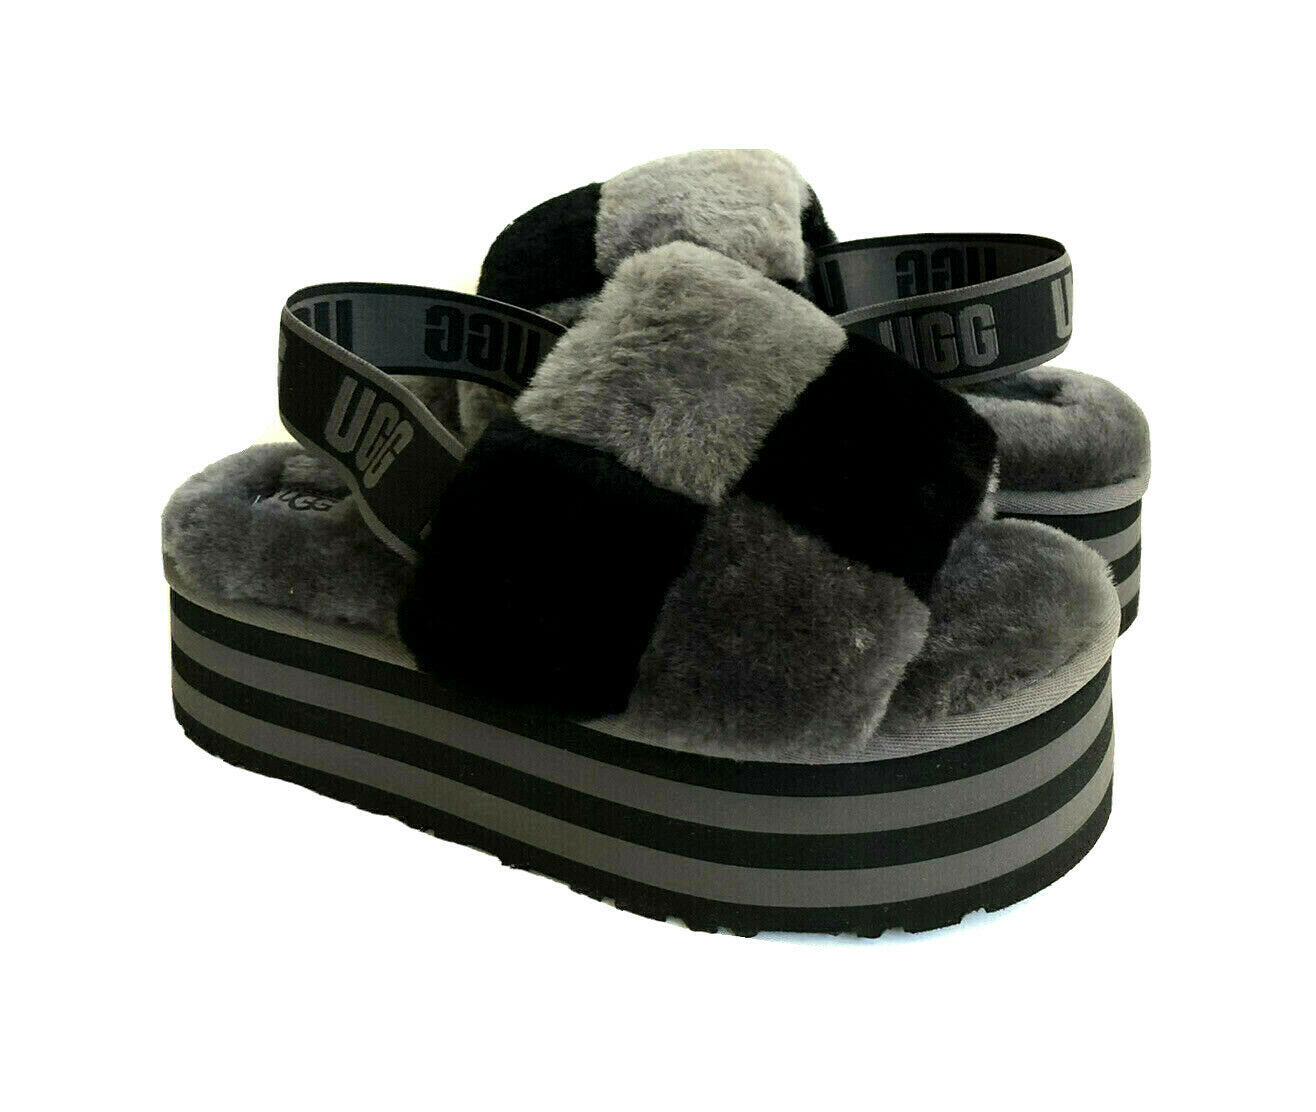 Primary image for UGG FLUFF YEAH DISCO CHECKER SLIDE BLACK / DARK GREY SANDAL US 7 / EU 38 / UK 5